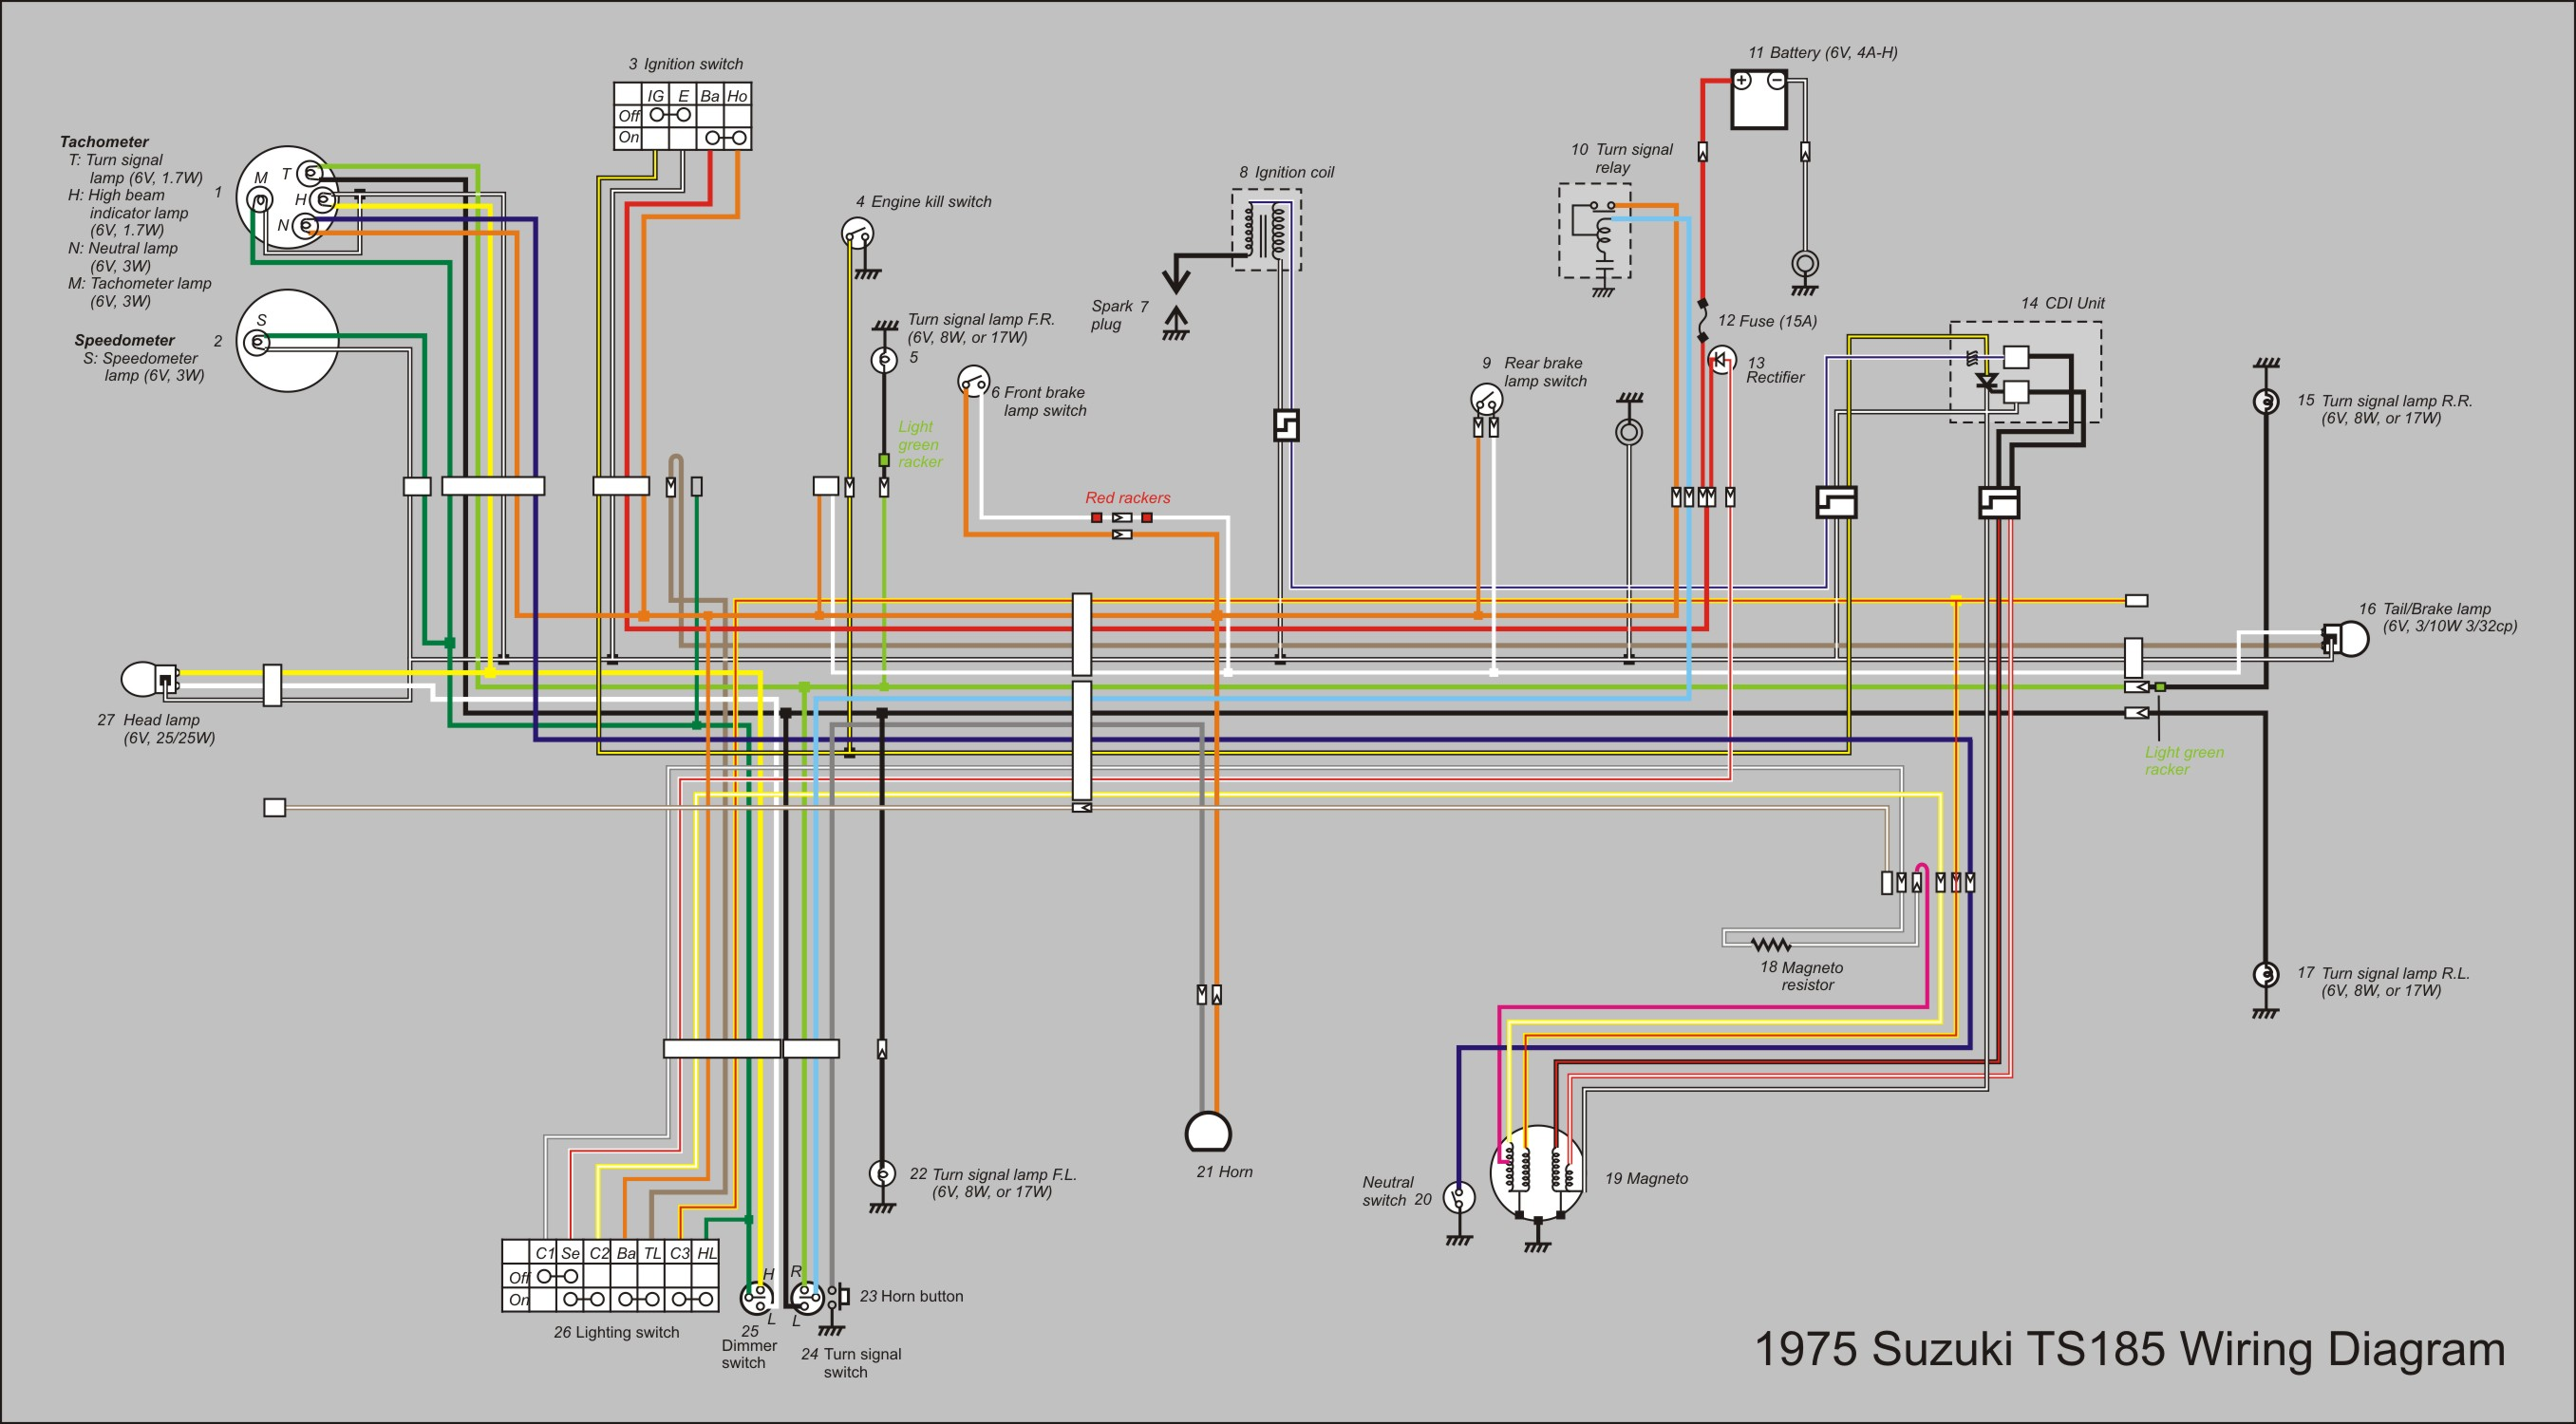 TS185_Wiring_Diagram_new file ts185 wiring diagram new jpg wikimedia commons suzuki wire diagram at edmiracle.co